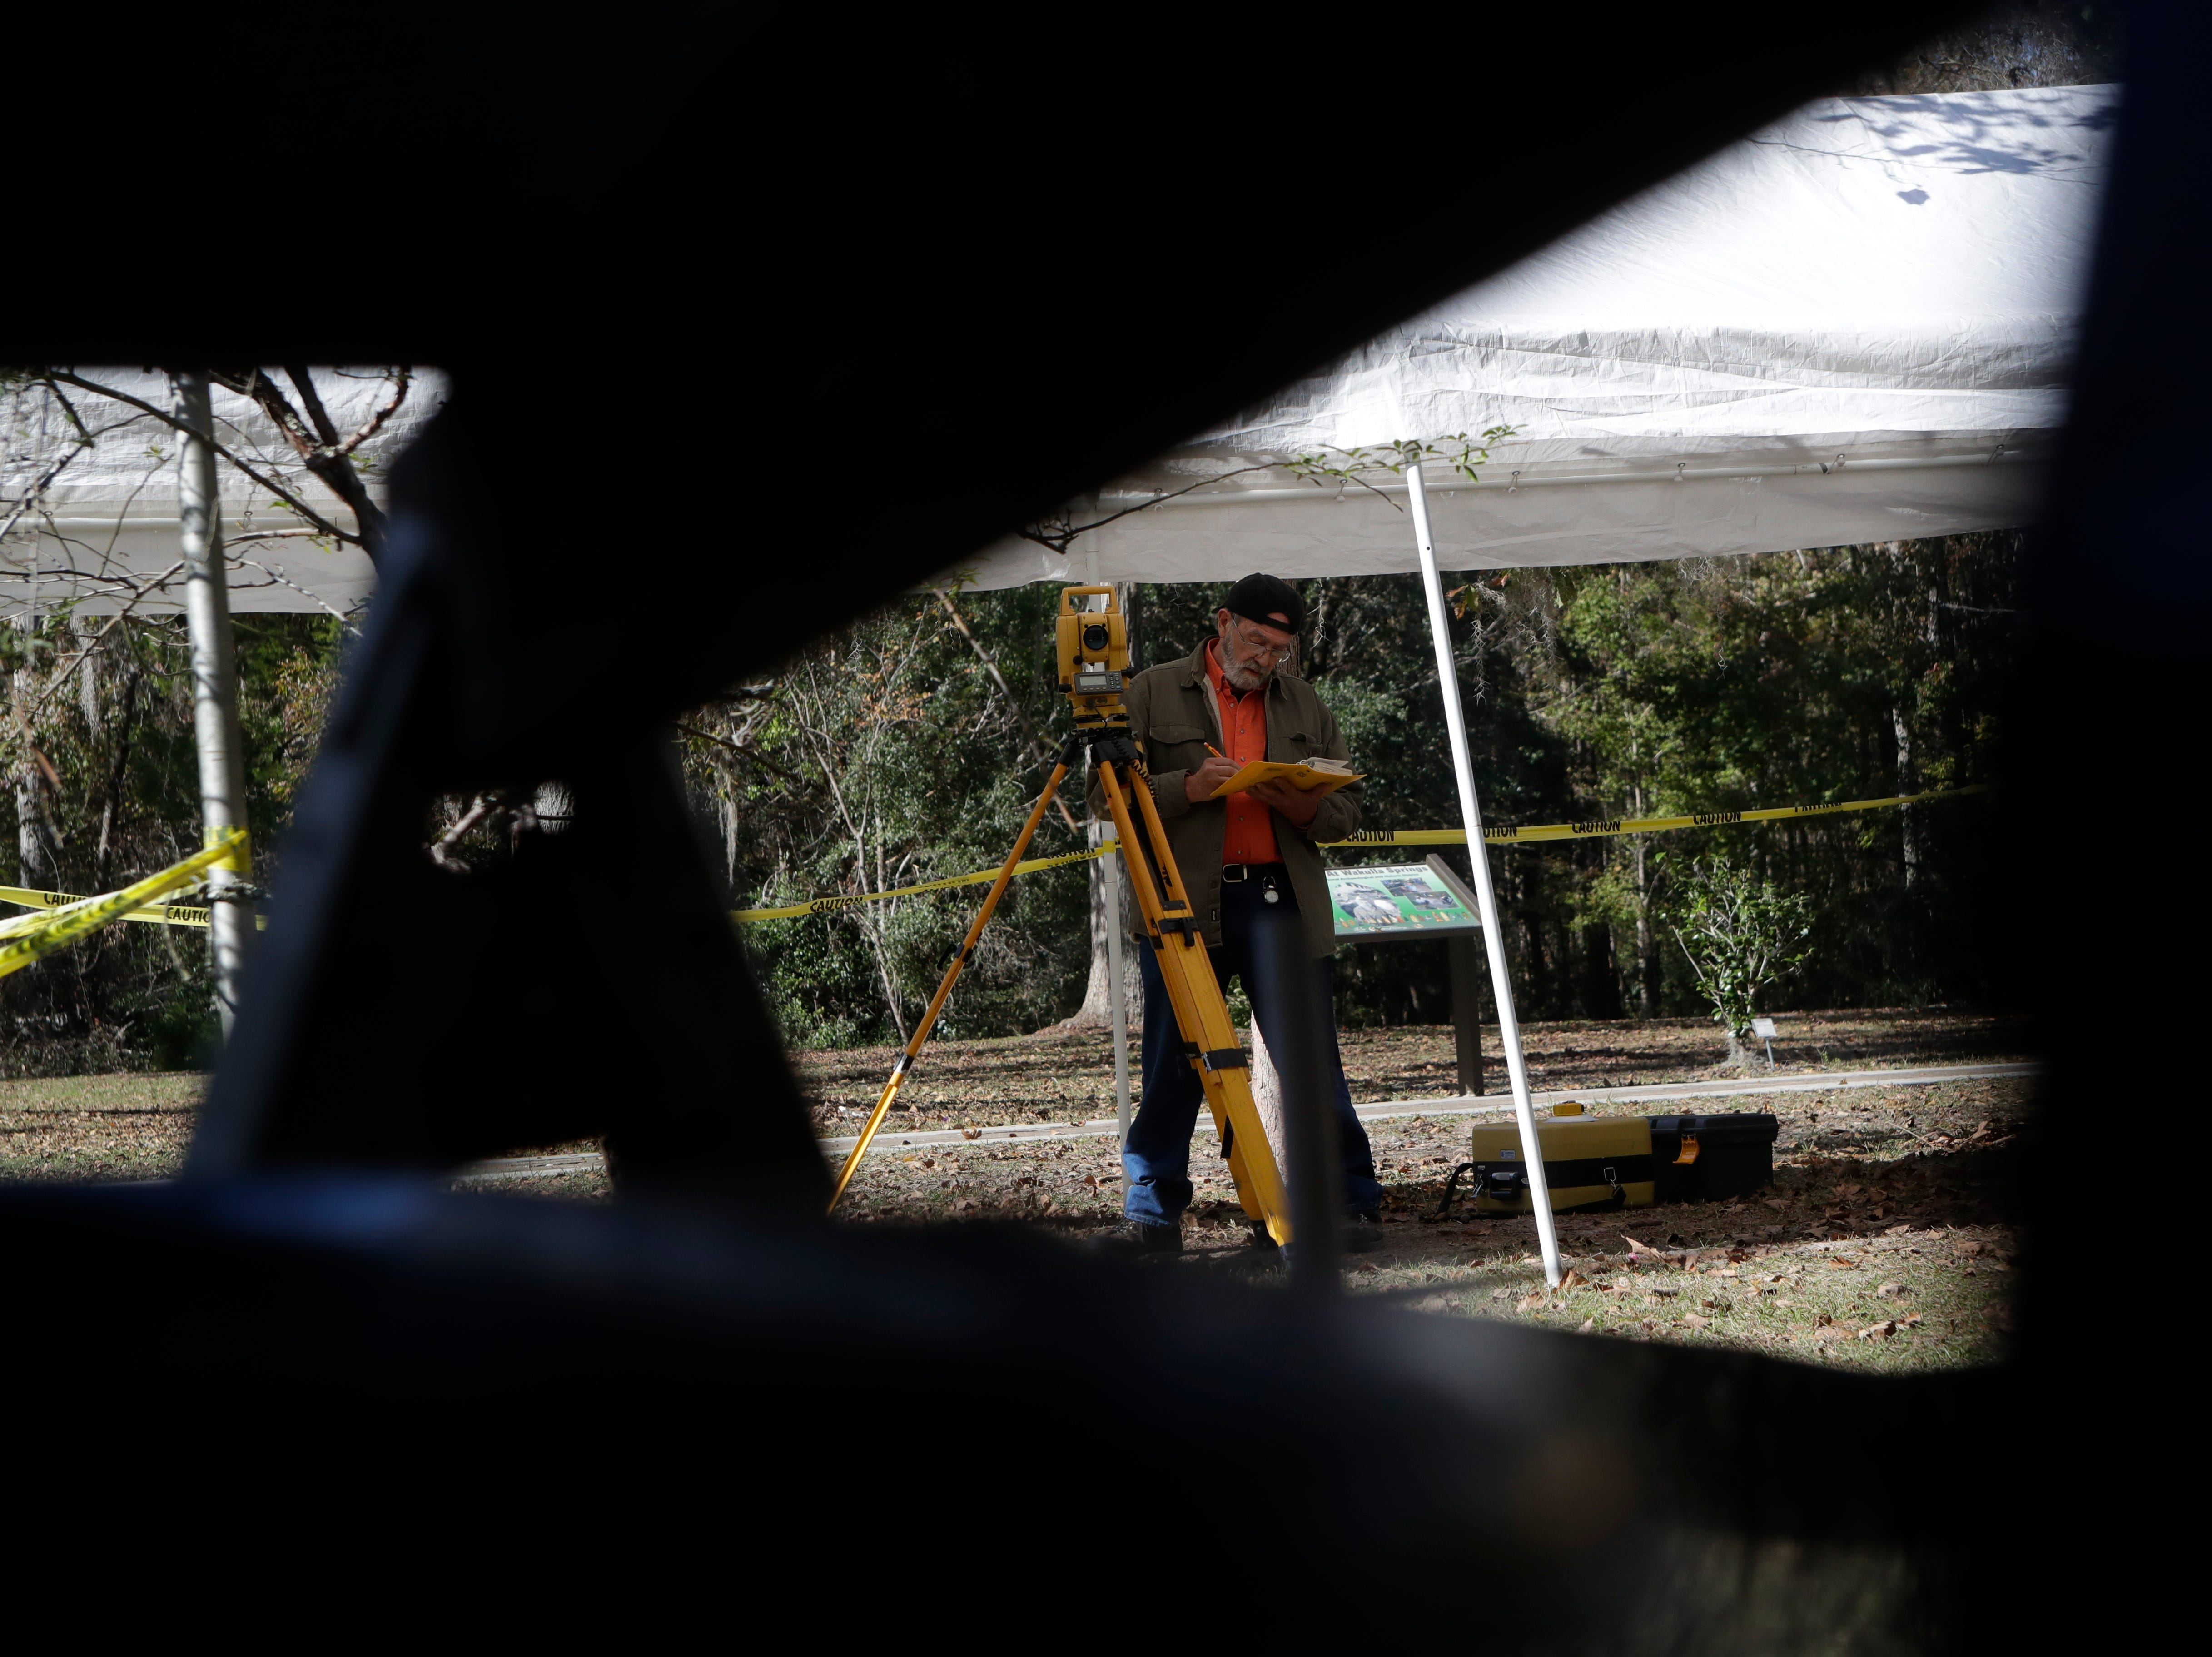 Aucilla Research Institute Archaeologist Gerald Brinkley measures the elevation above sea level of the pit during an archaeological dig being conducted by the Aucilla Research Institute at Wakulla Springs State Park Thursday, Nov. 29, 2018.